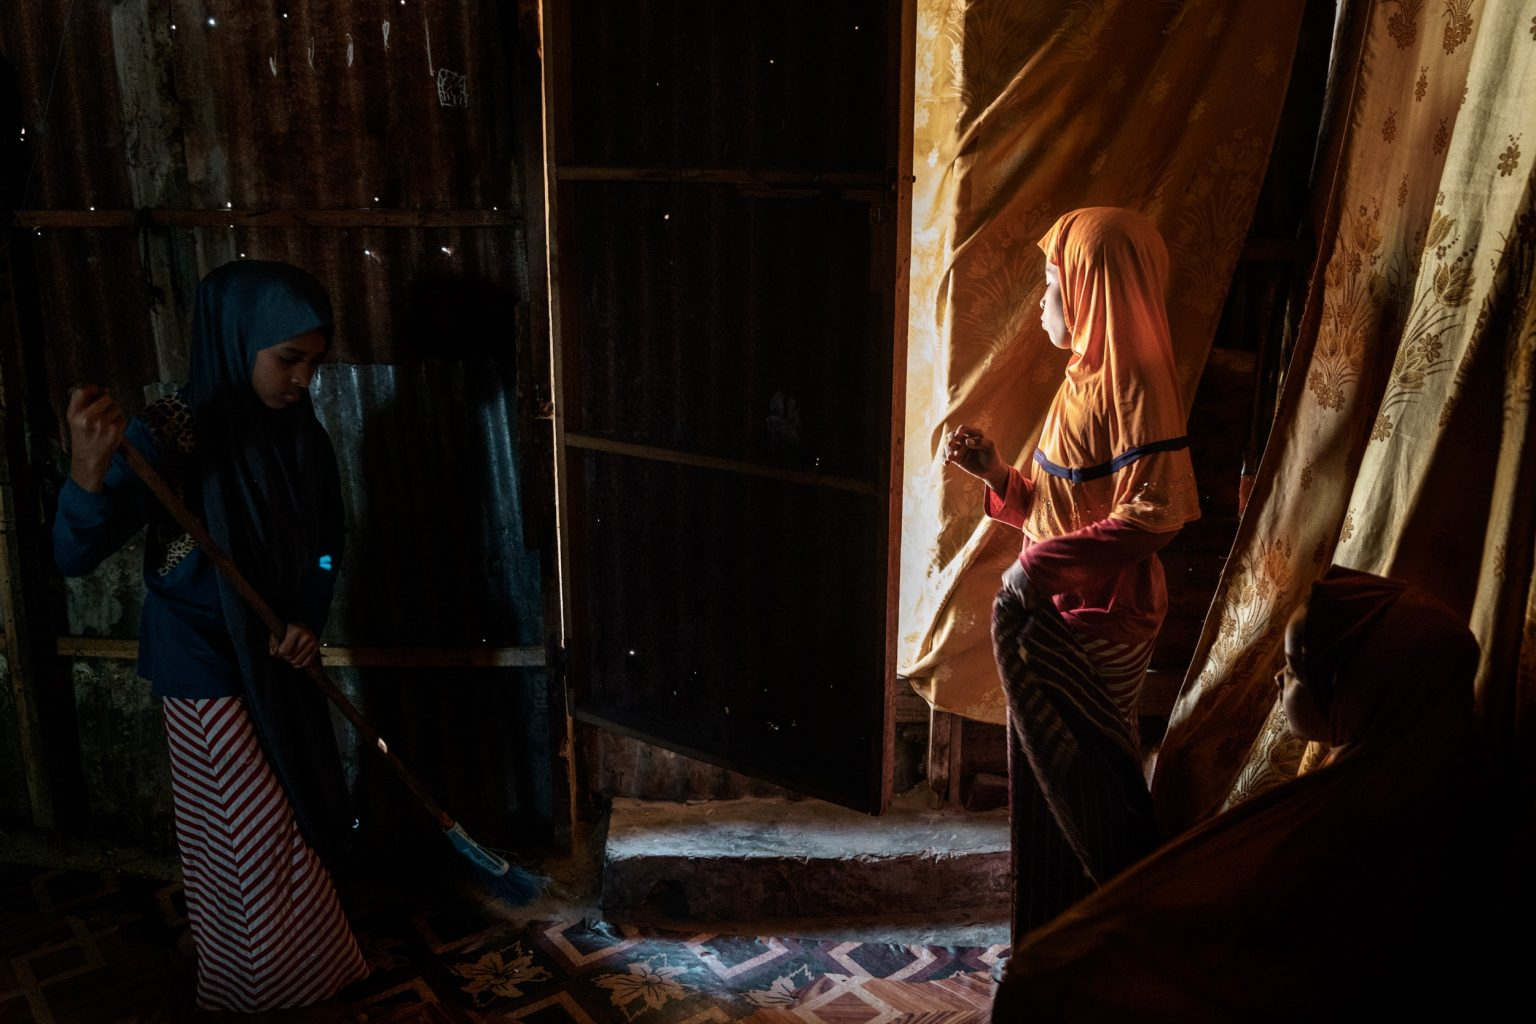 """Africa, Somalia, Benaadir region. Mogadishu. Hassan's daughters are seen at home doing housework. Hassan Ali Sufi, 49 years old. In 1981, he started working as an assistant chef in """"Casa Italia"""". A few years, later he became a chef. He left Somalia in 1991, and went to Yemen. In 1994 he went back to Somalia and then left again for Yemen, where he stayed until 2015, then came back to Somalia again because of the war. He used to have a good salary, but now he is struggling every day to survive. He pays 40 USD per month for the rent of his house. He has ten children, 7 boys, and 3 girls.  Since 2015, when he came back to Somalia, he has experienced 2 bomb attacks, but luckily, he was not injured. Hassan's daughters are seen at home doing the housework."""